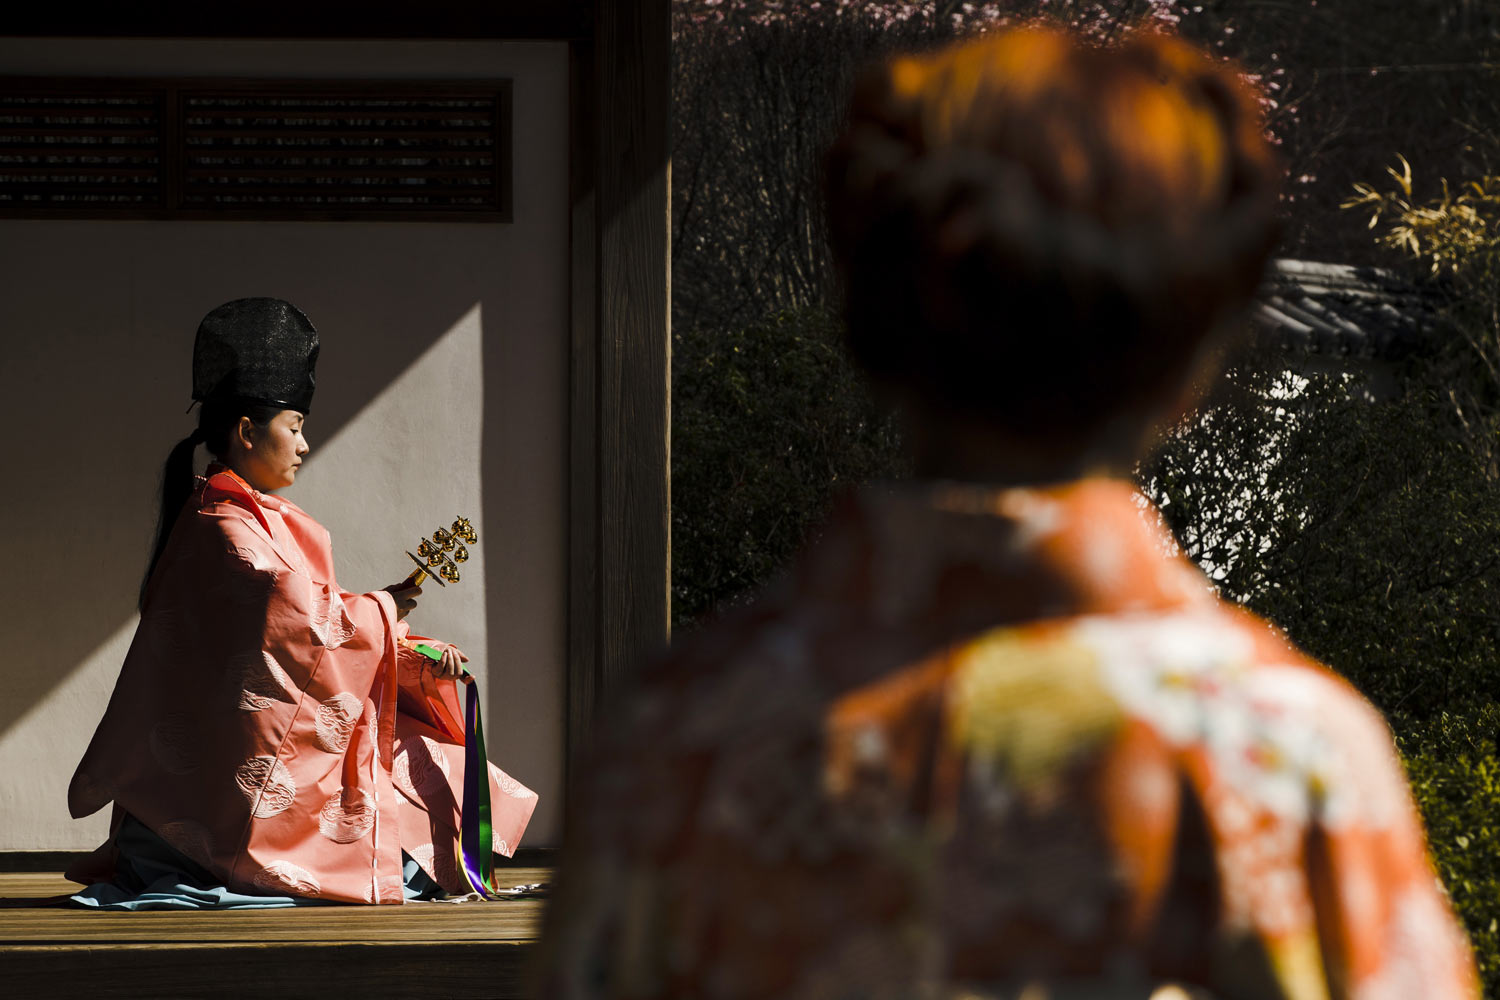 The Rev. Kuniko Kanawa performs a cherry blossom dance during a news conference opening the 2019 Subaru Cherry Blossom at the Shofuso Japanese House and Gardens in Philadelphia, Wednesday, April 3, 2019. (AP Photo/Matt Rourke)